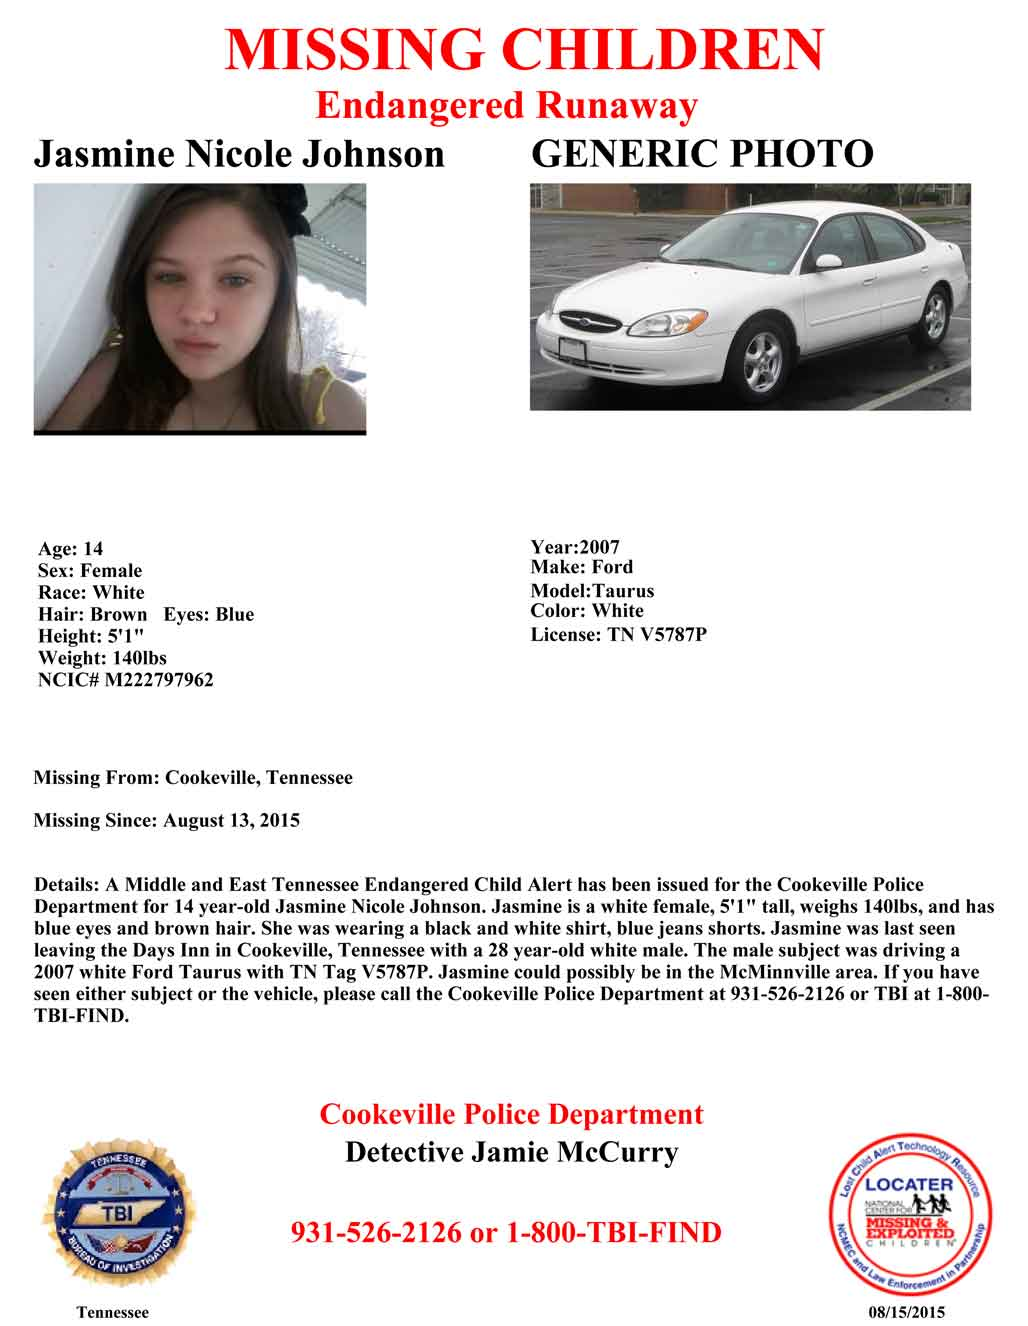 Endangered Child Alert Issued for 14-Year-Old Tennessee Girl